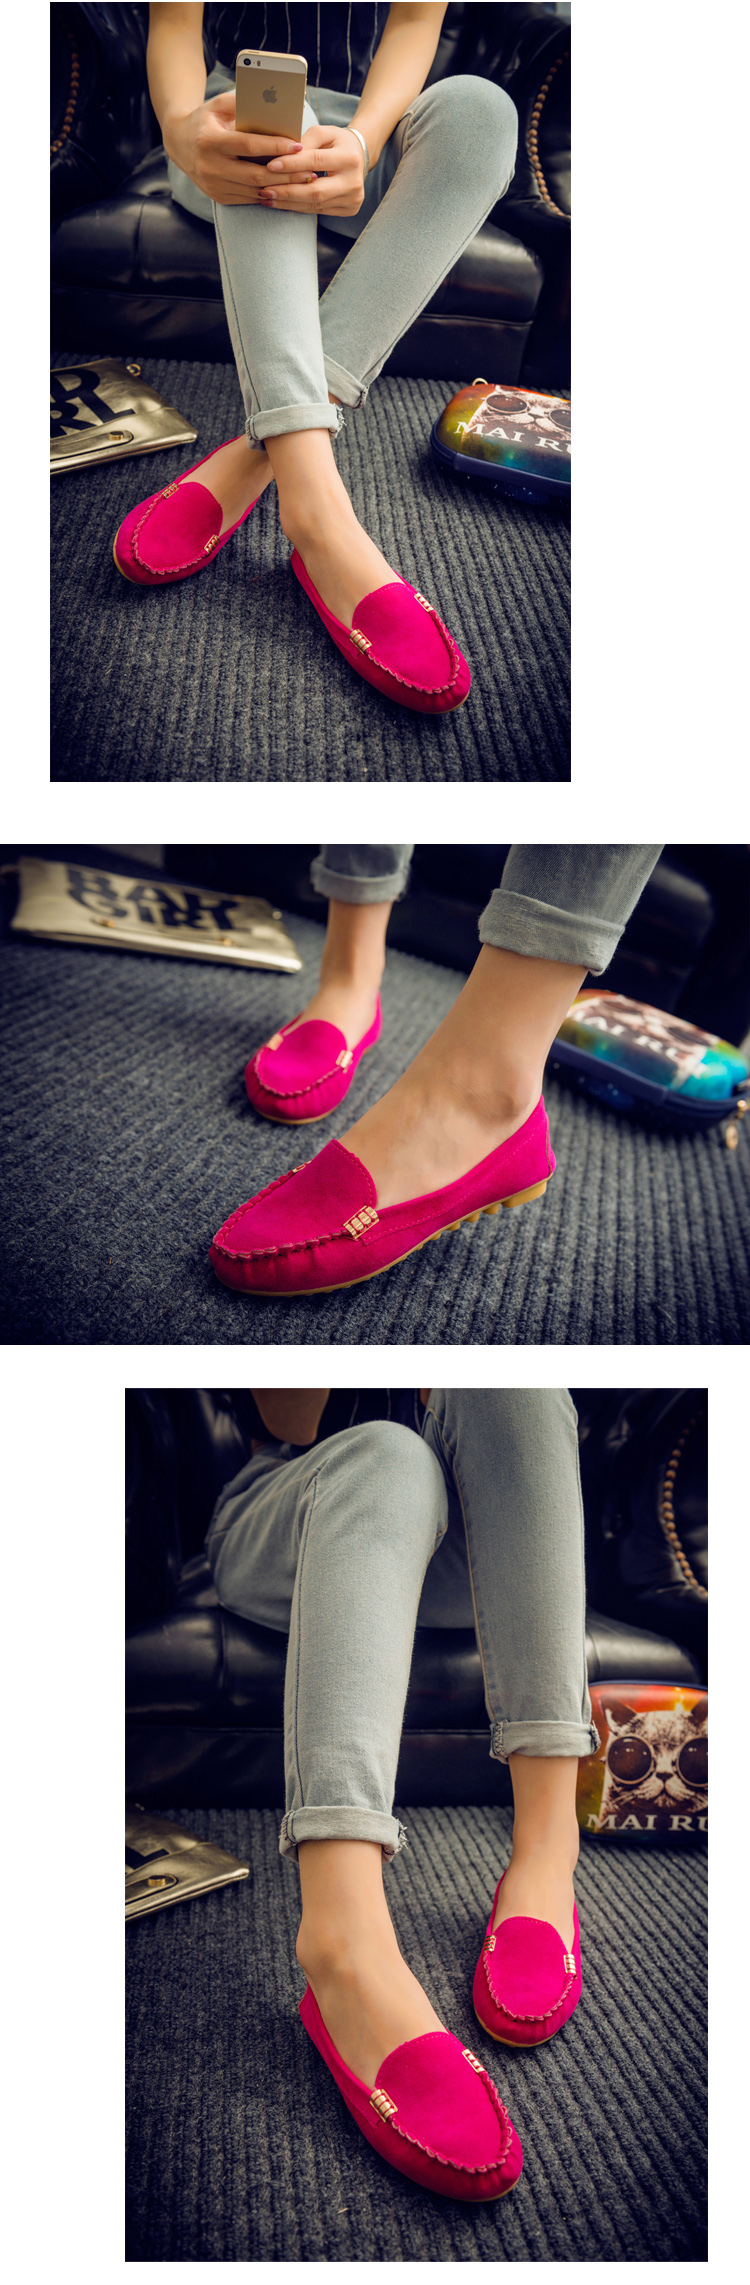 HTB1wqQFXiDxK1RjSsD4q6z1DFXa9 Plus Size 35 43 Women Flats shoes 2019 Loafers Candy Color Slip on Flat Shoes Ballet Flats Comfortable Ladies shoe zapatos mujer